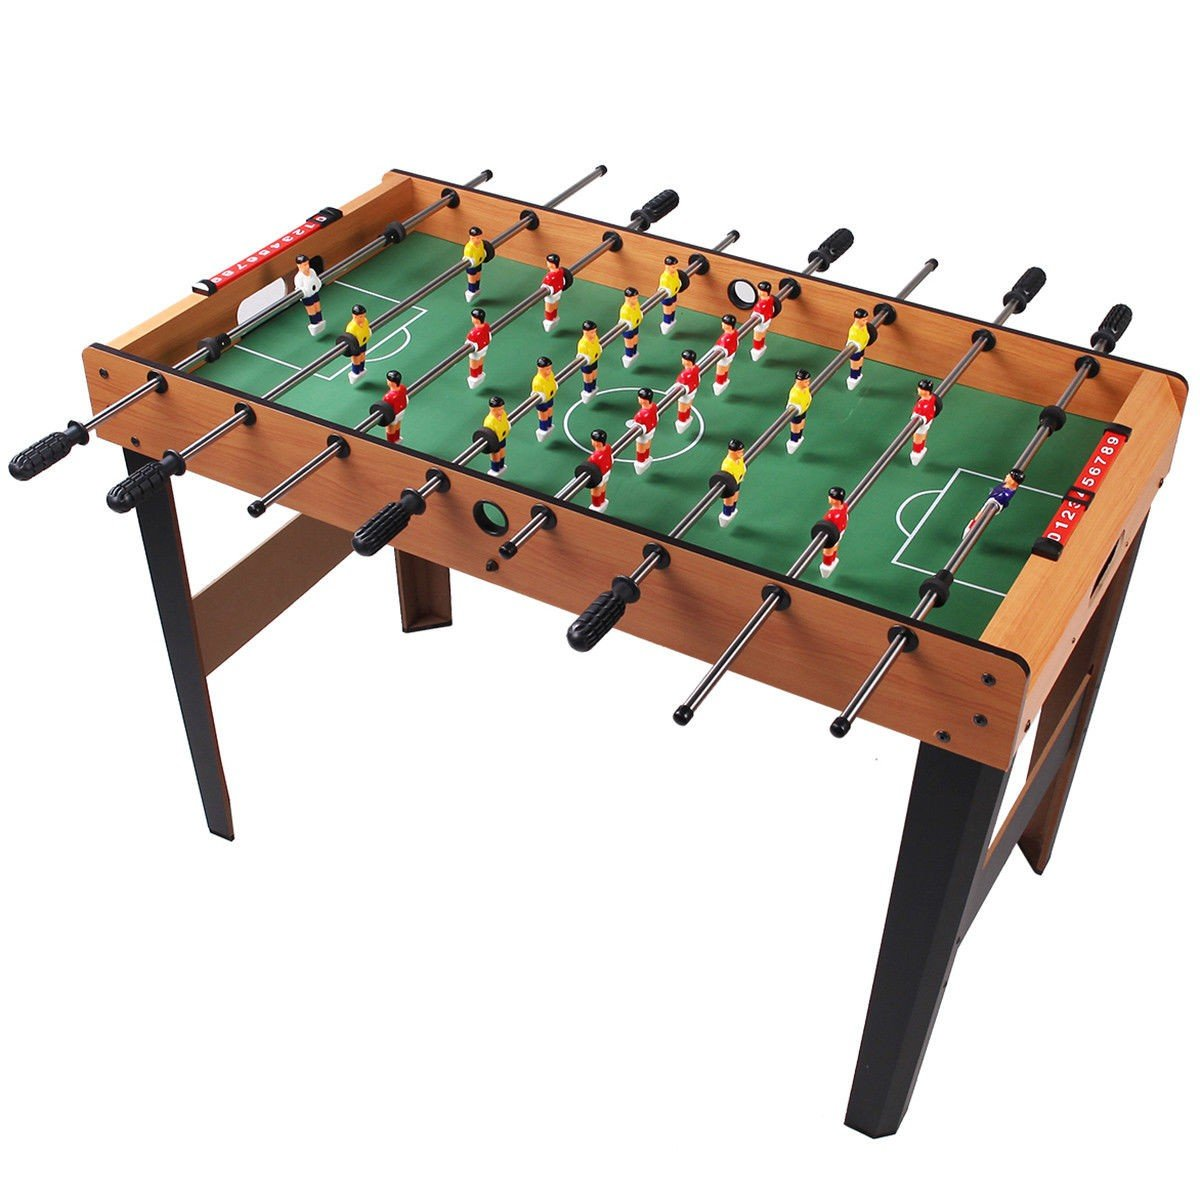 CWY 45'' Indoor Arcade Game Foosball Table